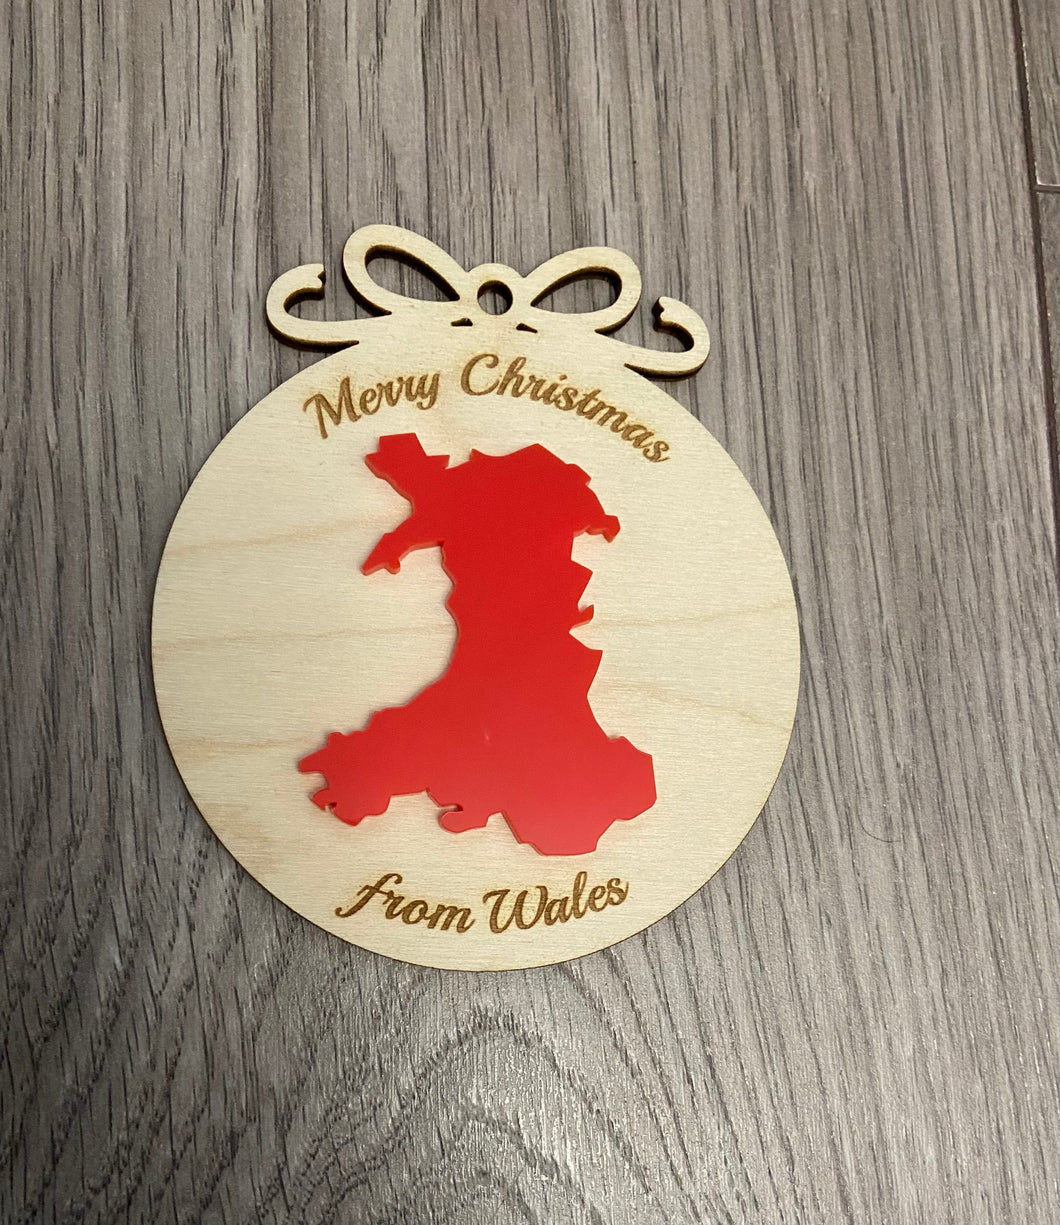 Merry Christmas from Wales bauble